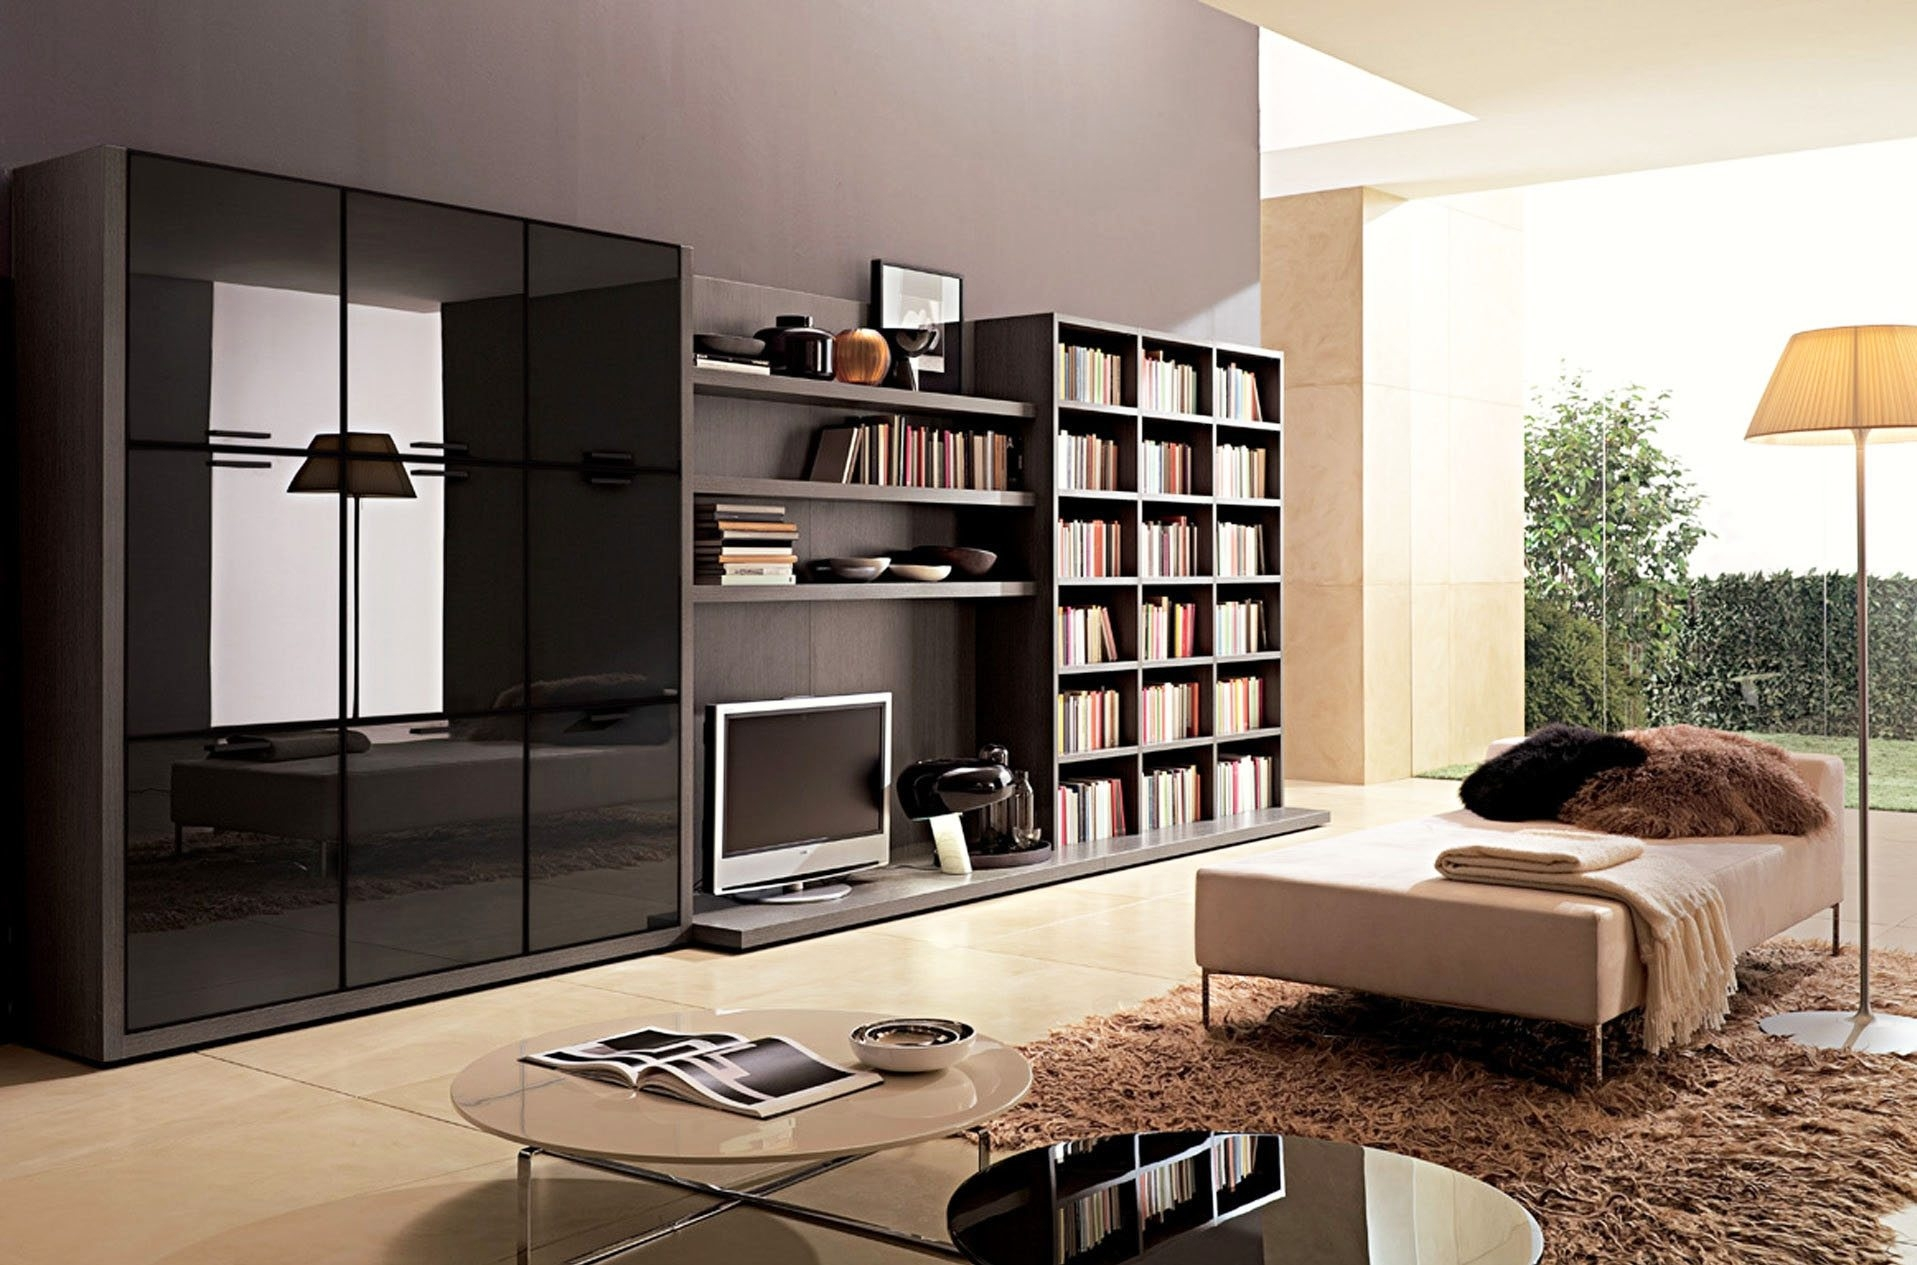 Modern Design Storage Furniture For Living Room Classy Storage Pertaining To Living Room Storage Units (#13 of 15)